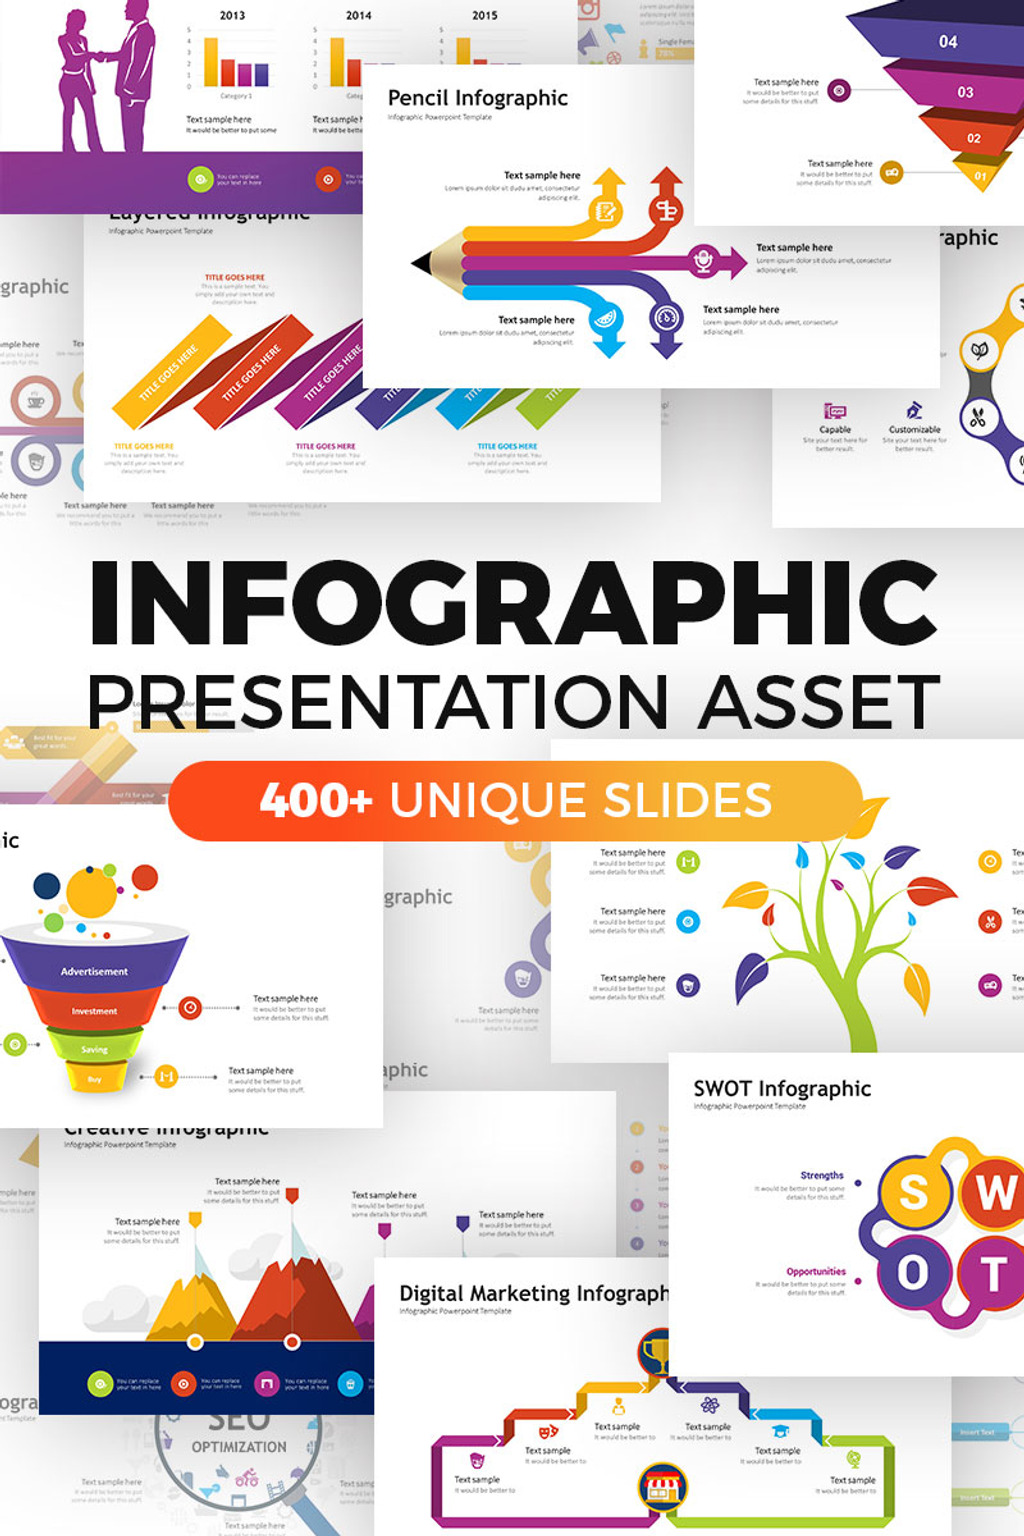 838 powerpoint templates ppt templates powerpoint themes infographic pack presentation asset powerpoint template toneelgroepblik Images